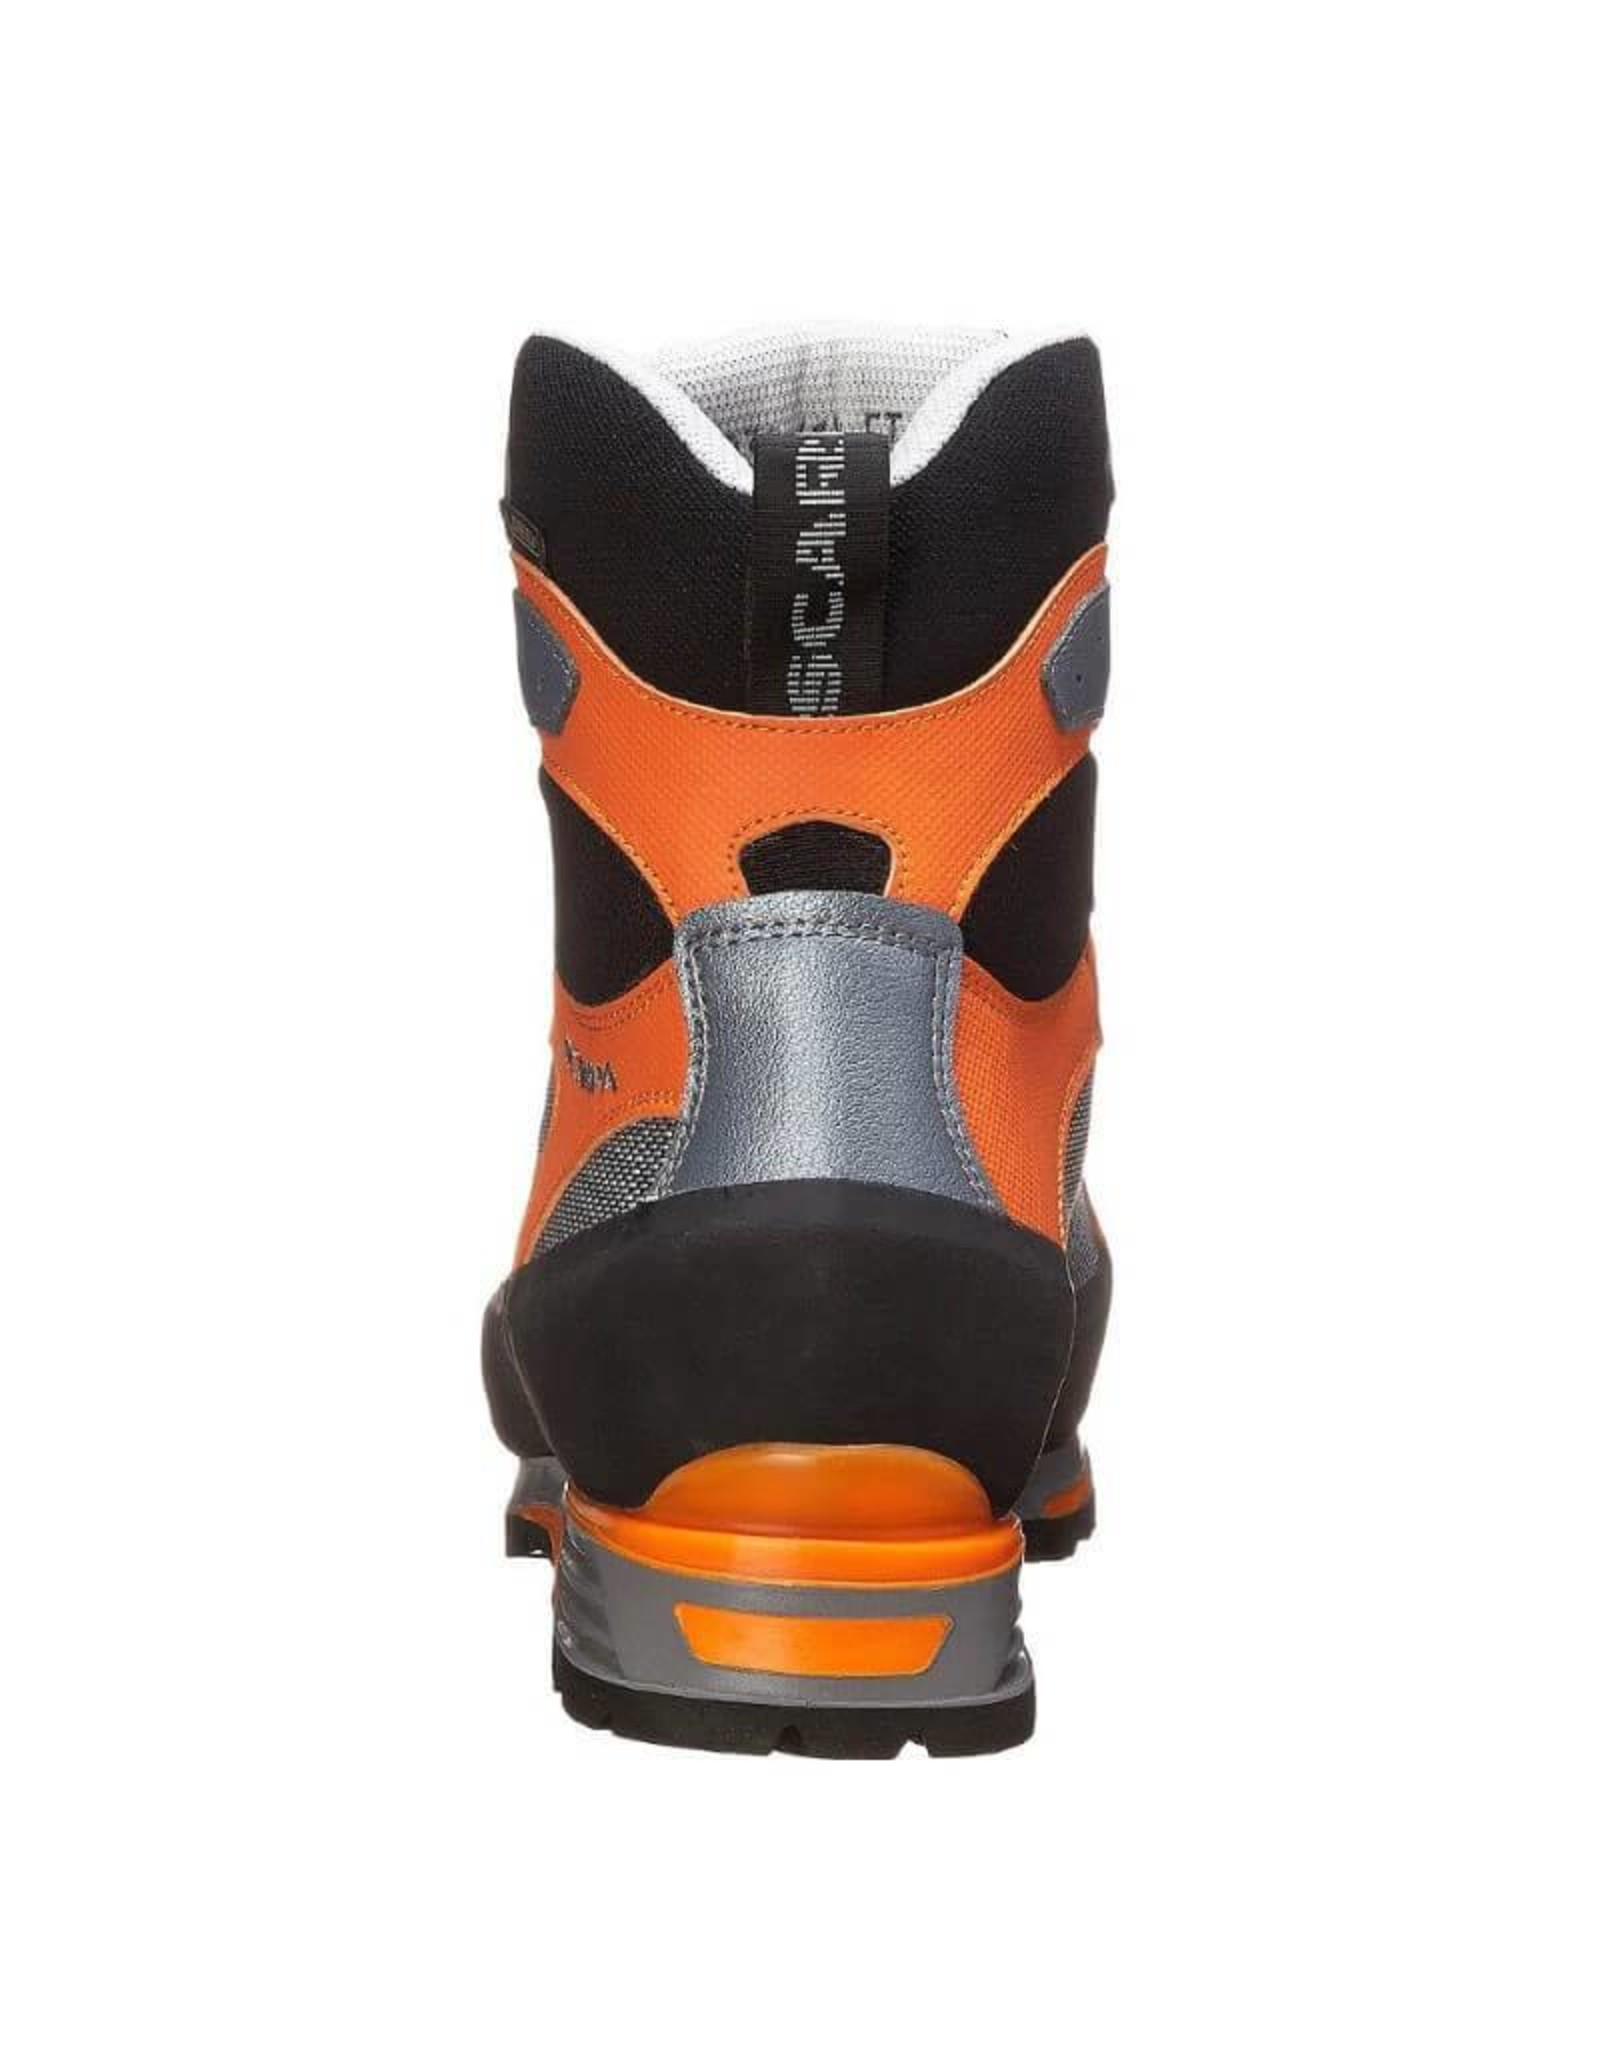 Scarpa Scarpa Charmoz Mountaineering Boots - Men